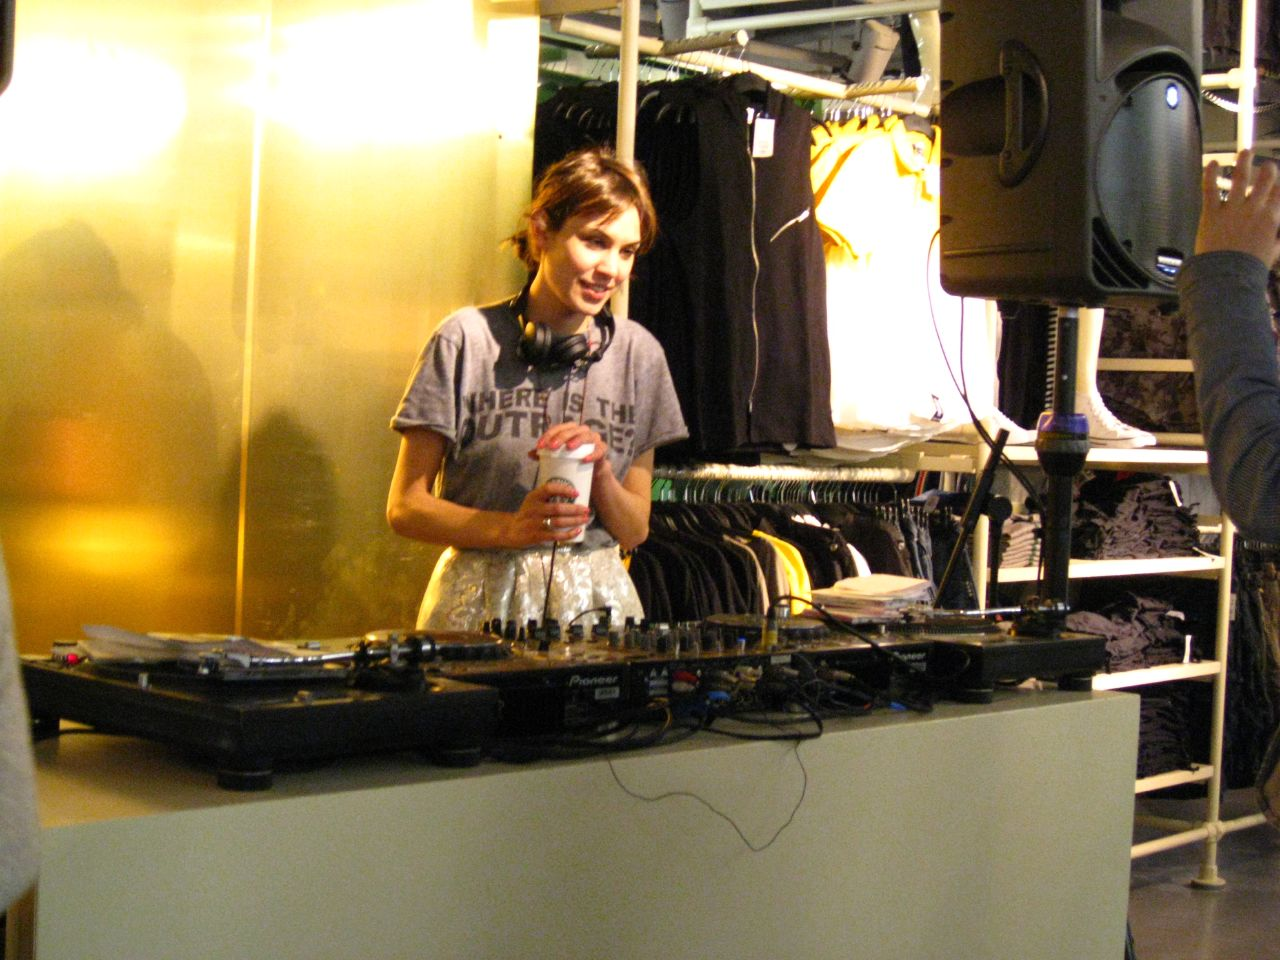 More pictures of her DJ set at